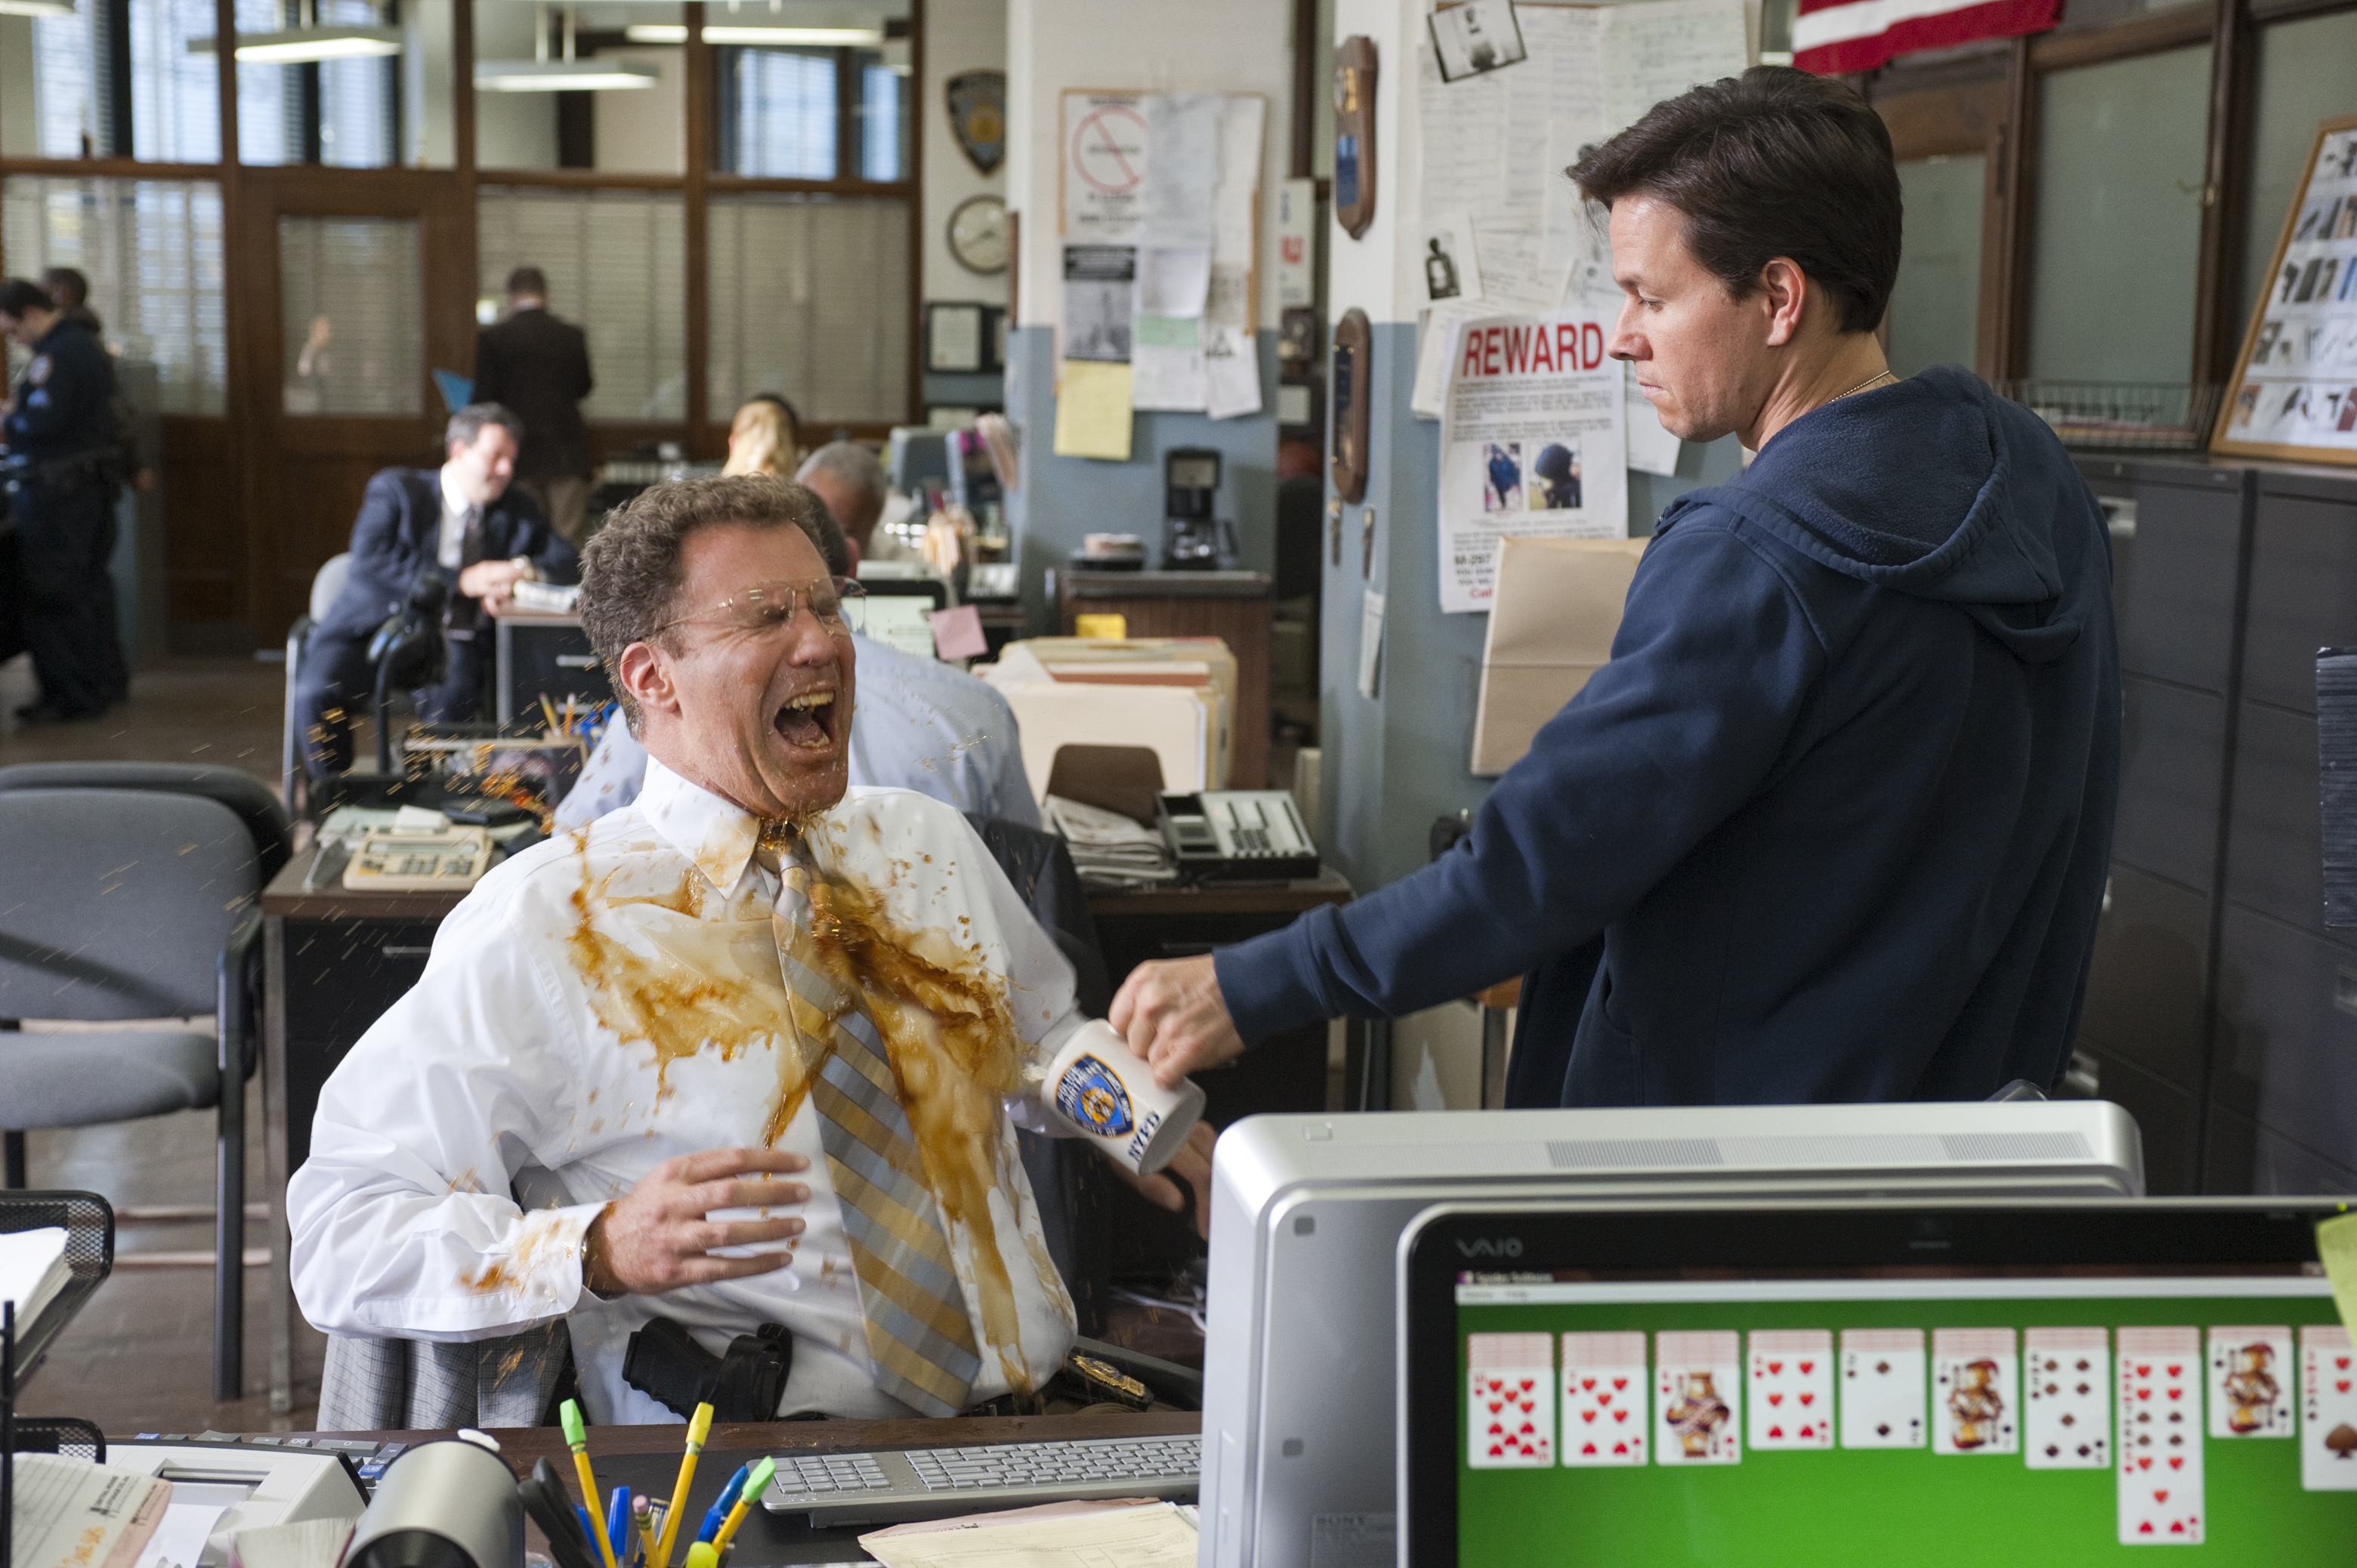 The_Other_Guys_movie_image_Will_Ferrell-6.jpg